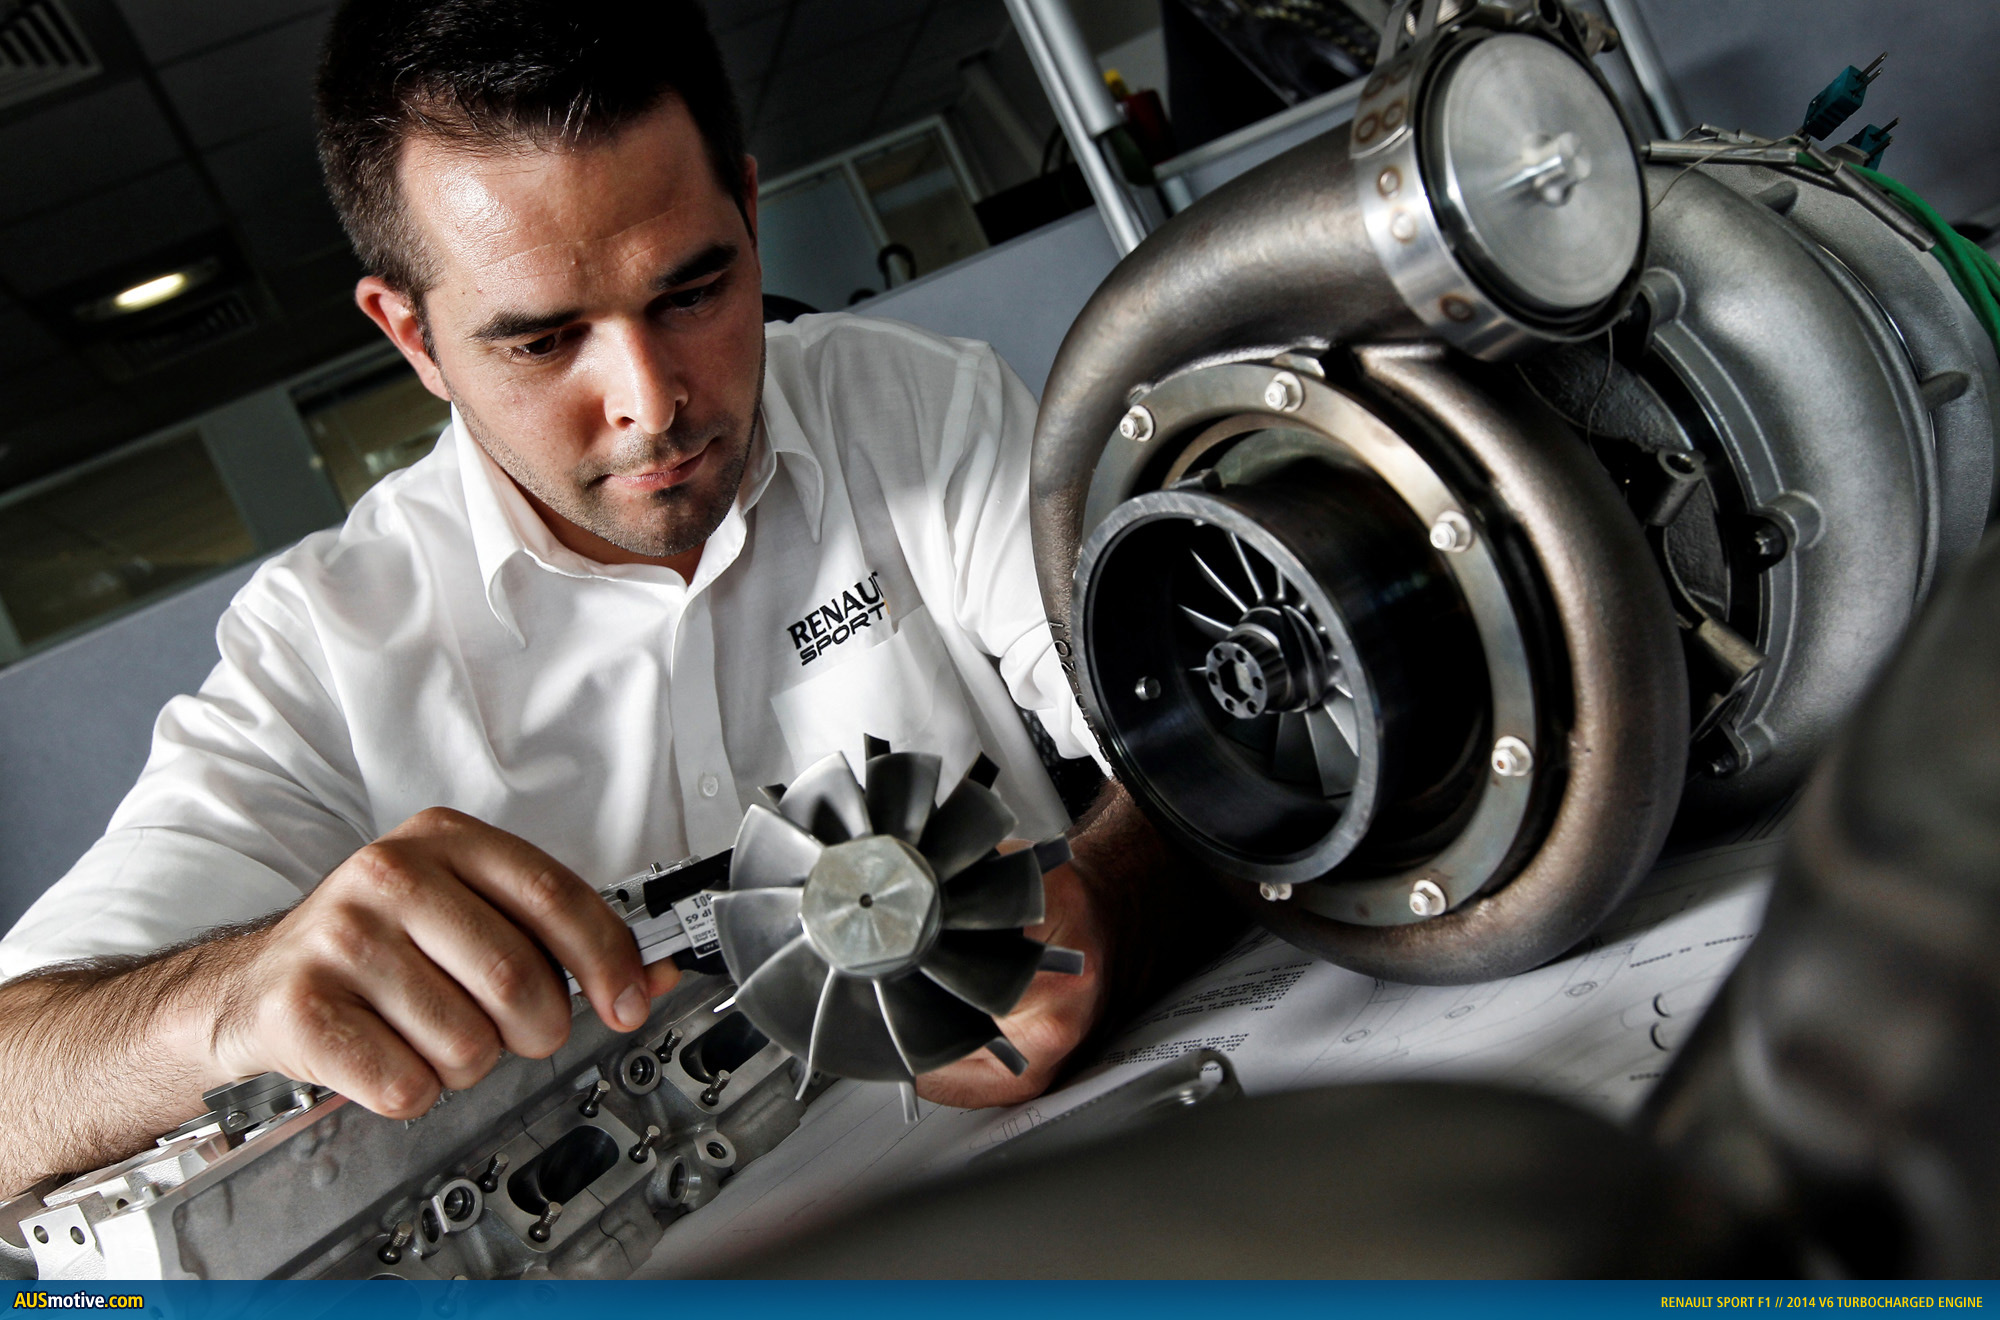 renault shows off its 2014 f1 v6 power unit